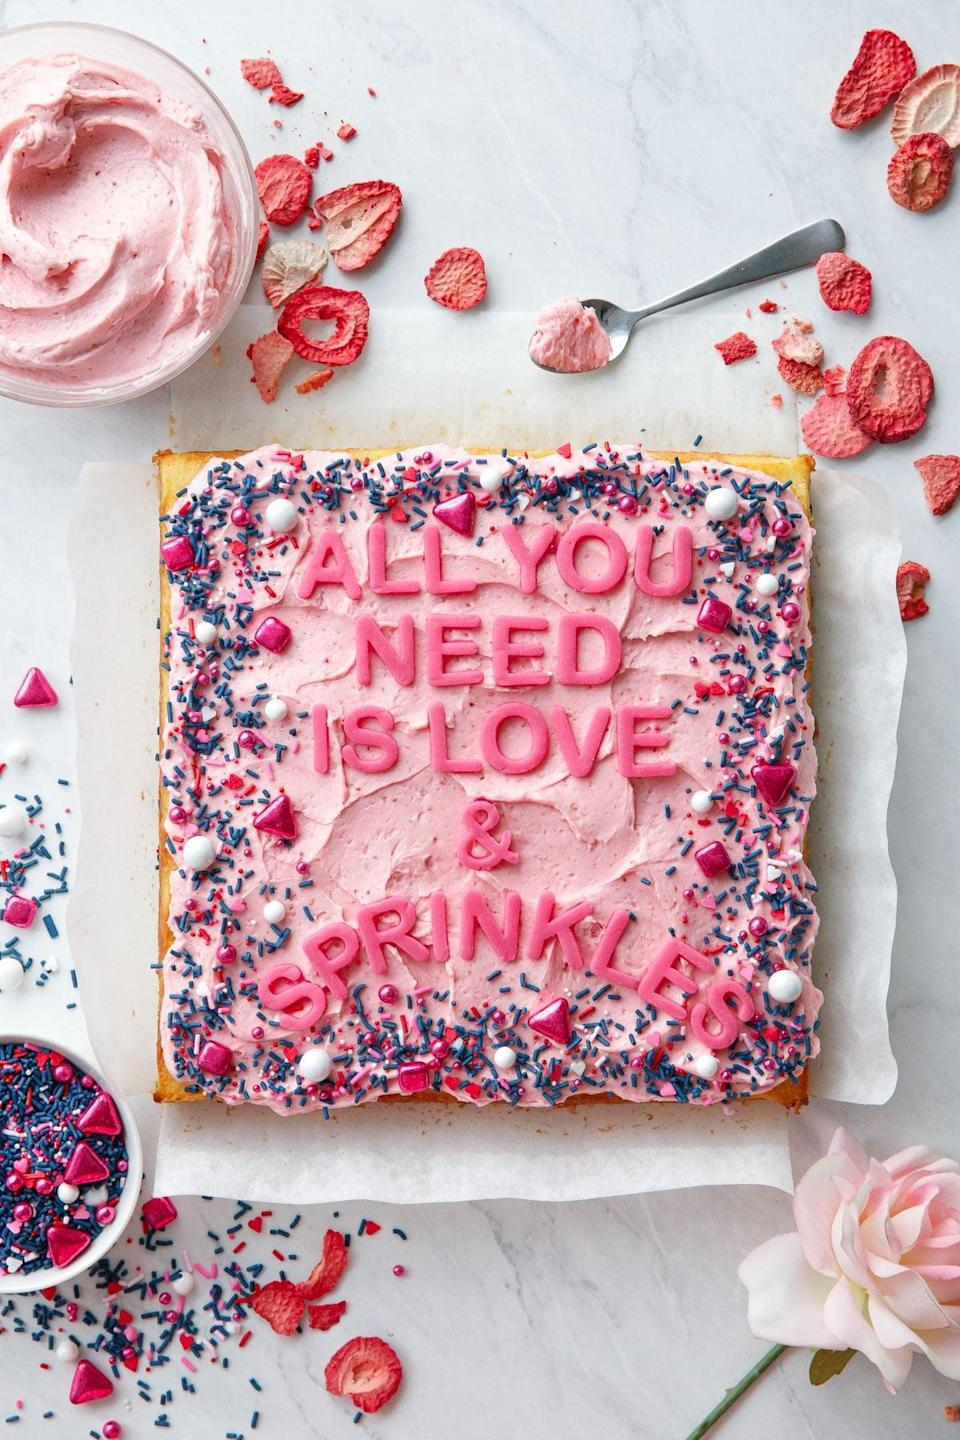 "<p>Classic, cute, and timeless, this moist cake features a hint of vanilla and lemon zest that'll entice anyone's taste buds. It's topped with a fluffy strawberry rose buttercream, so make this for your sweetheart to score extra points on Valentine's Day. </p> <p><strong>Get the recipe</strong>: <a href=""https://www.loveandoliveoil.com/2021/01/yellow-sheet-cake-with-strawberry-rose-buttercream.html"" class=""link rapid-noclick-resp"" rel=""nofollow noopener"" target=""_blank"" data-ylk=""slk:yellow sheet cake with strawberry rose buttercream"">yellow sheet cake with strawberry rose buttercream</a></p>"